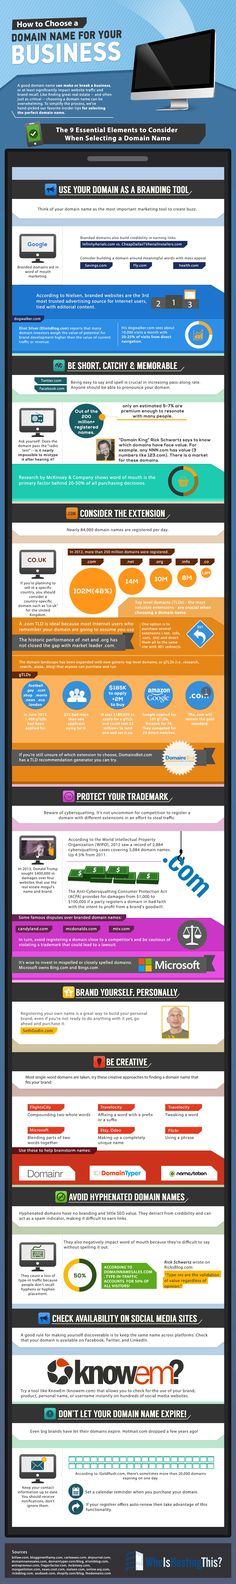 #infographic: How to Choose a Best Domain Name